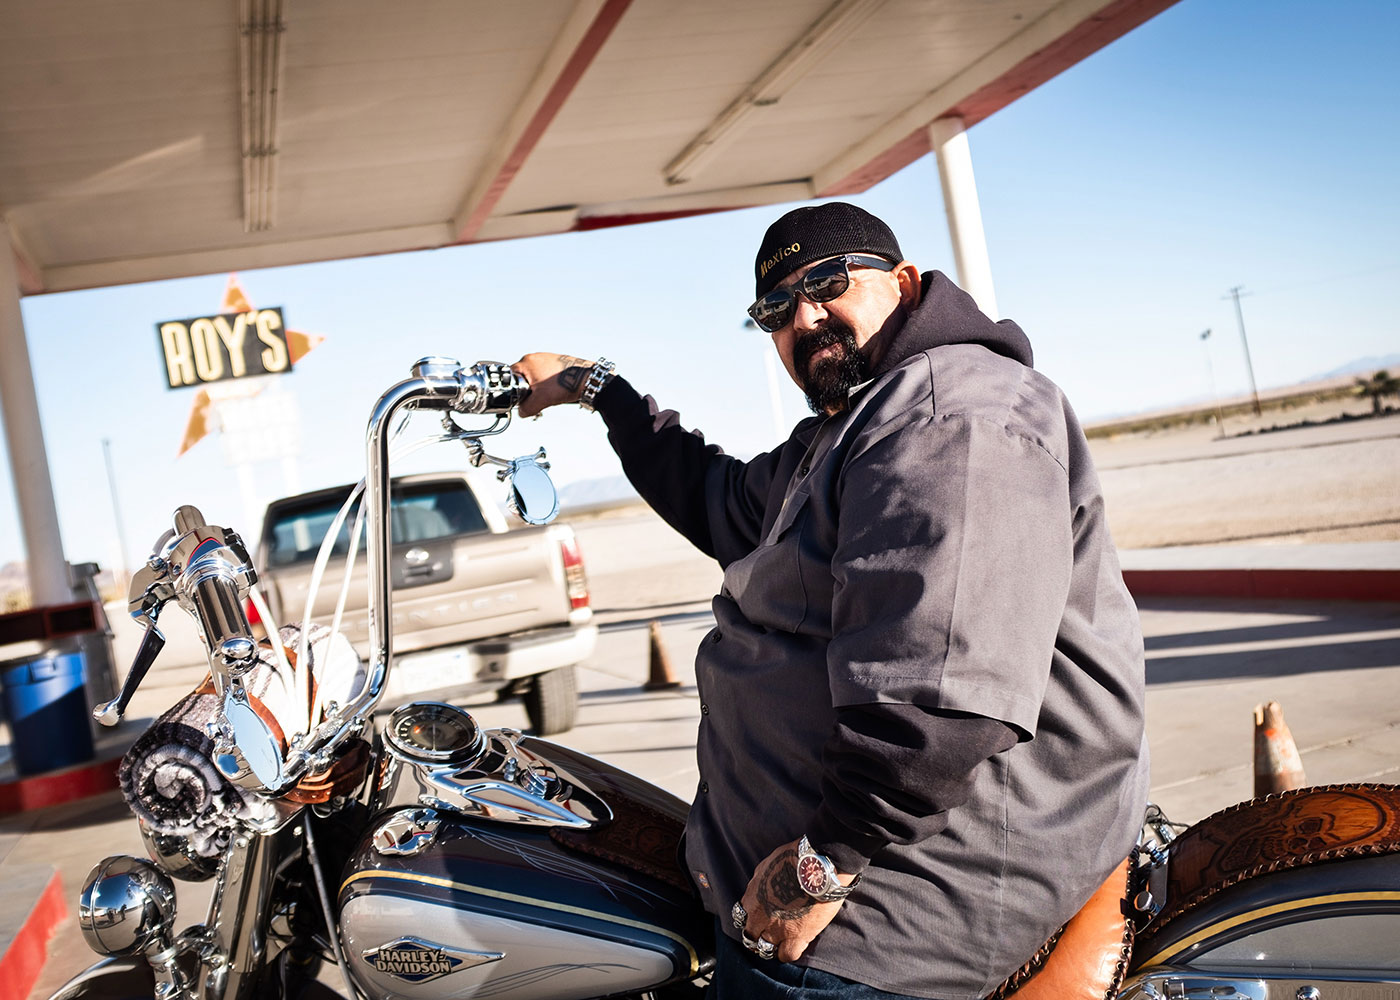 Manny Lopez mit seiner Harley Davidson, Roy's Motel and Cafe, Amboy, California, USA